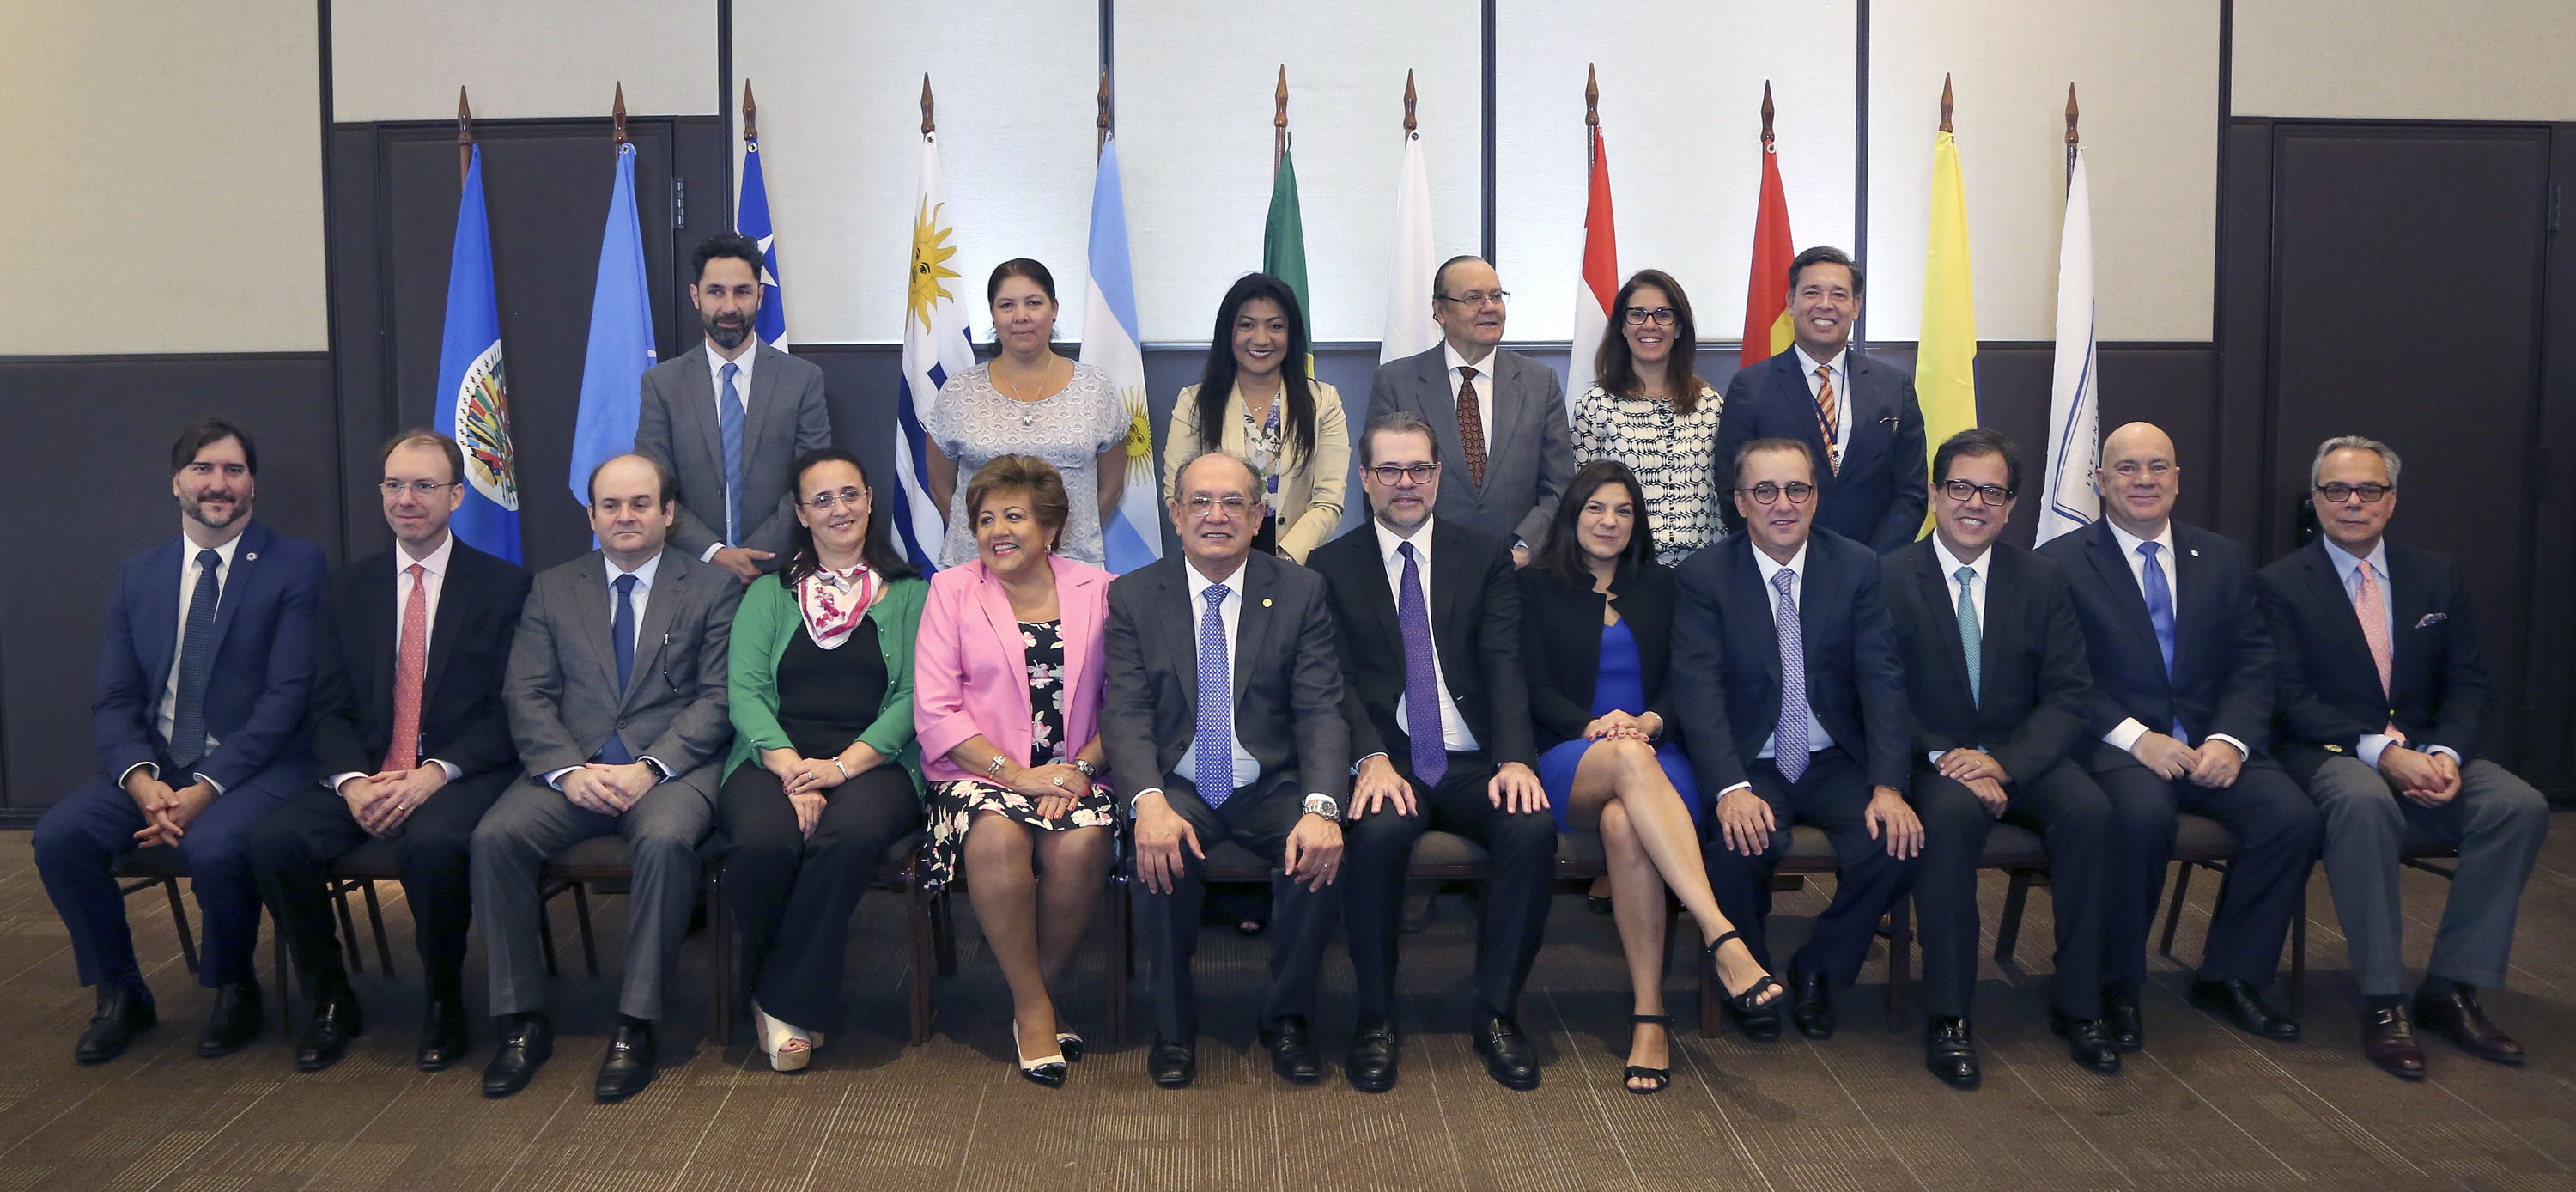 Daniel Zovatto, Regional Director for Latin America and the Caribbean, International IDEA, (seated far-right); together with representatives of the Electoral Bodies of MERCOSUR; UN; Human Rights Watch; OAS and other international experts.